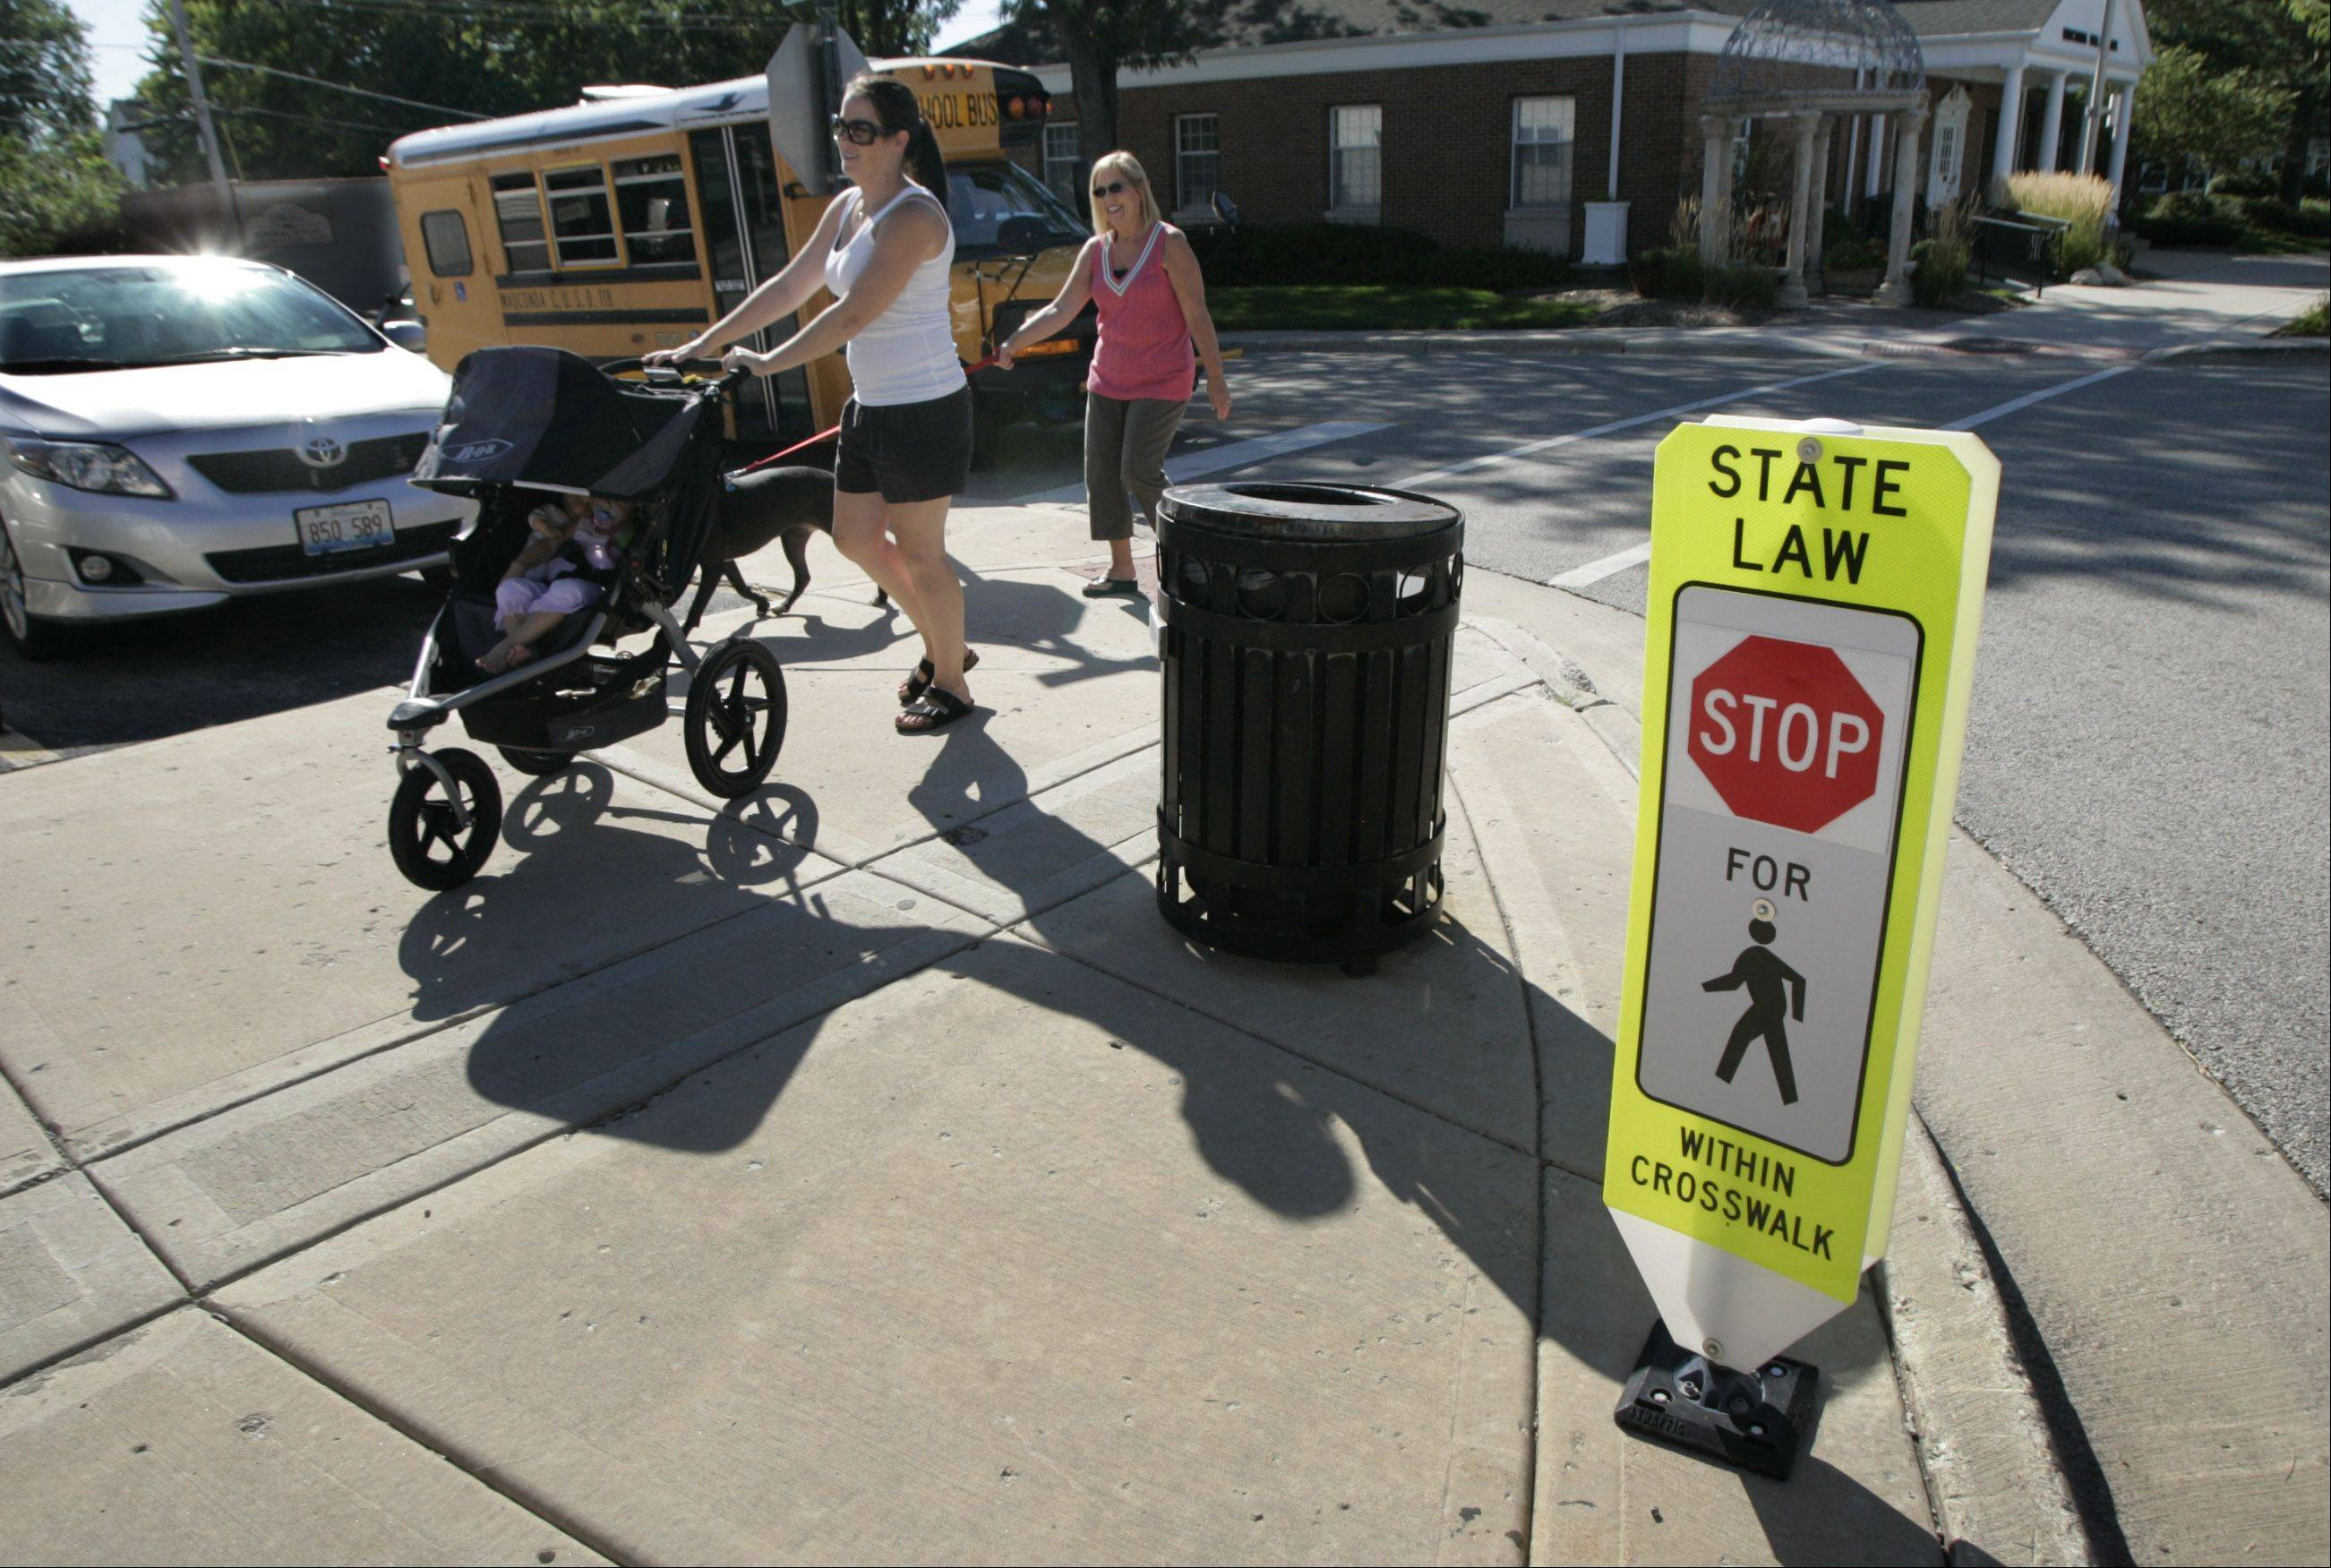 Jodi Romans and her 18-month-old daughter, Lonni, and friend Linda Wagner with her dog, Riley, use a crosswalk on Main Street in downtown Wauconda. Illinois beefed up its crosswalk law in July 2010.